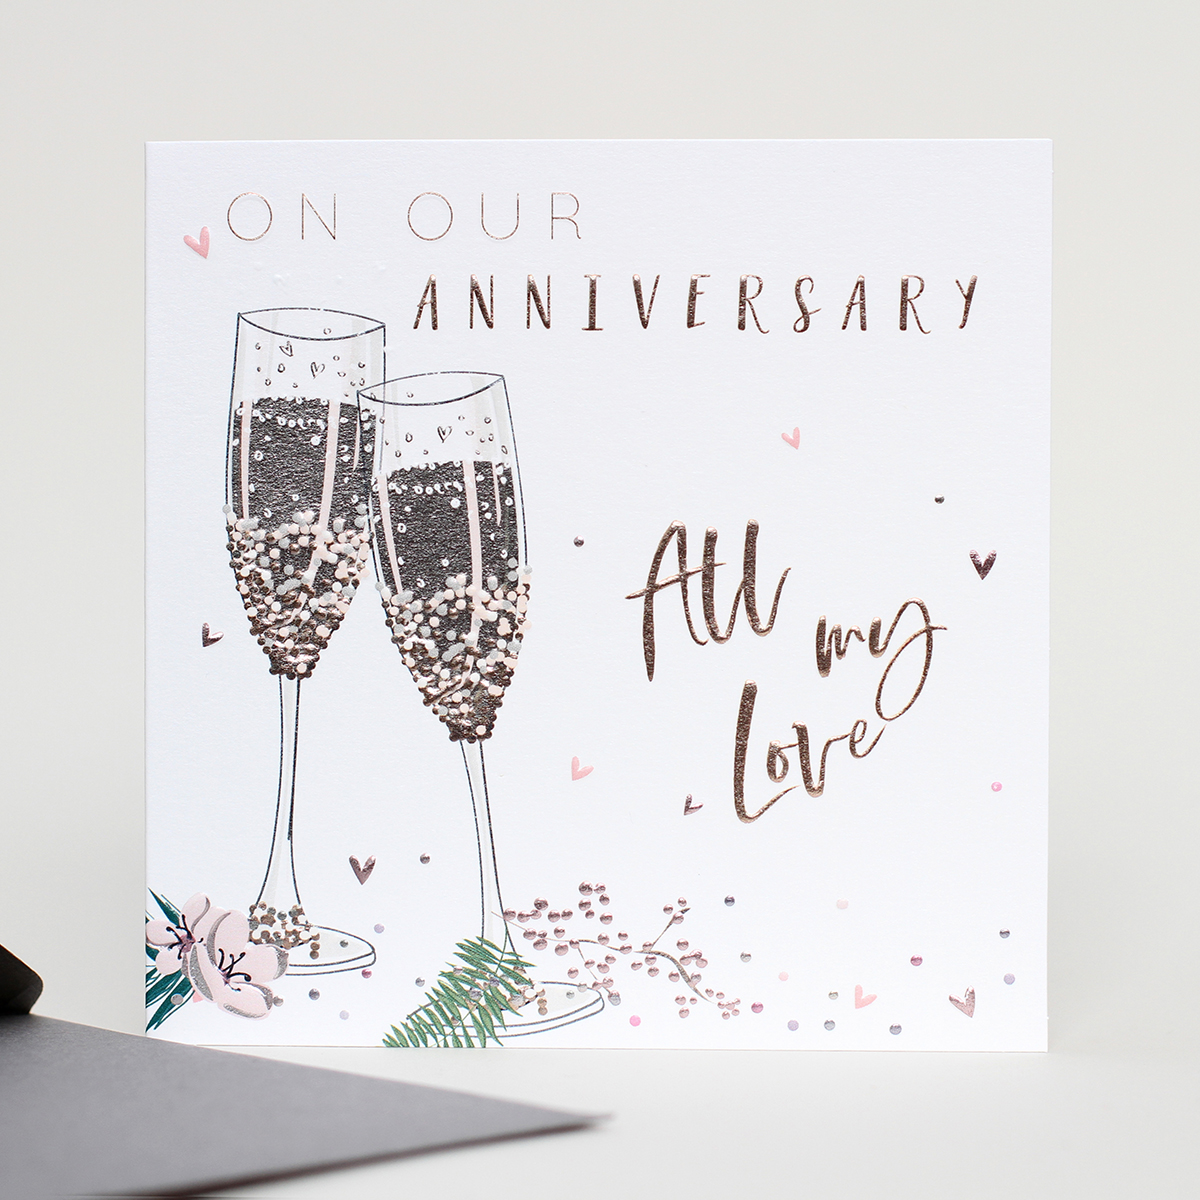 Belly Button Designs Our Anniversary